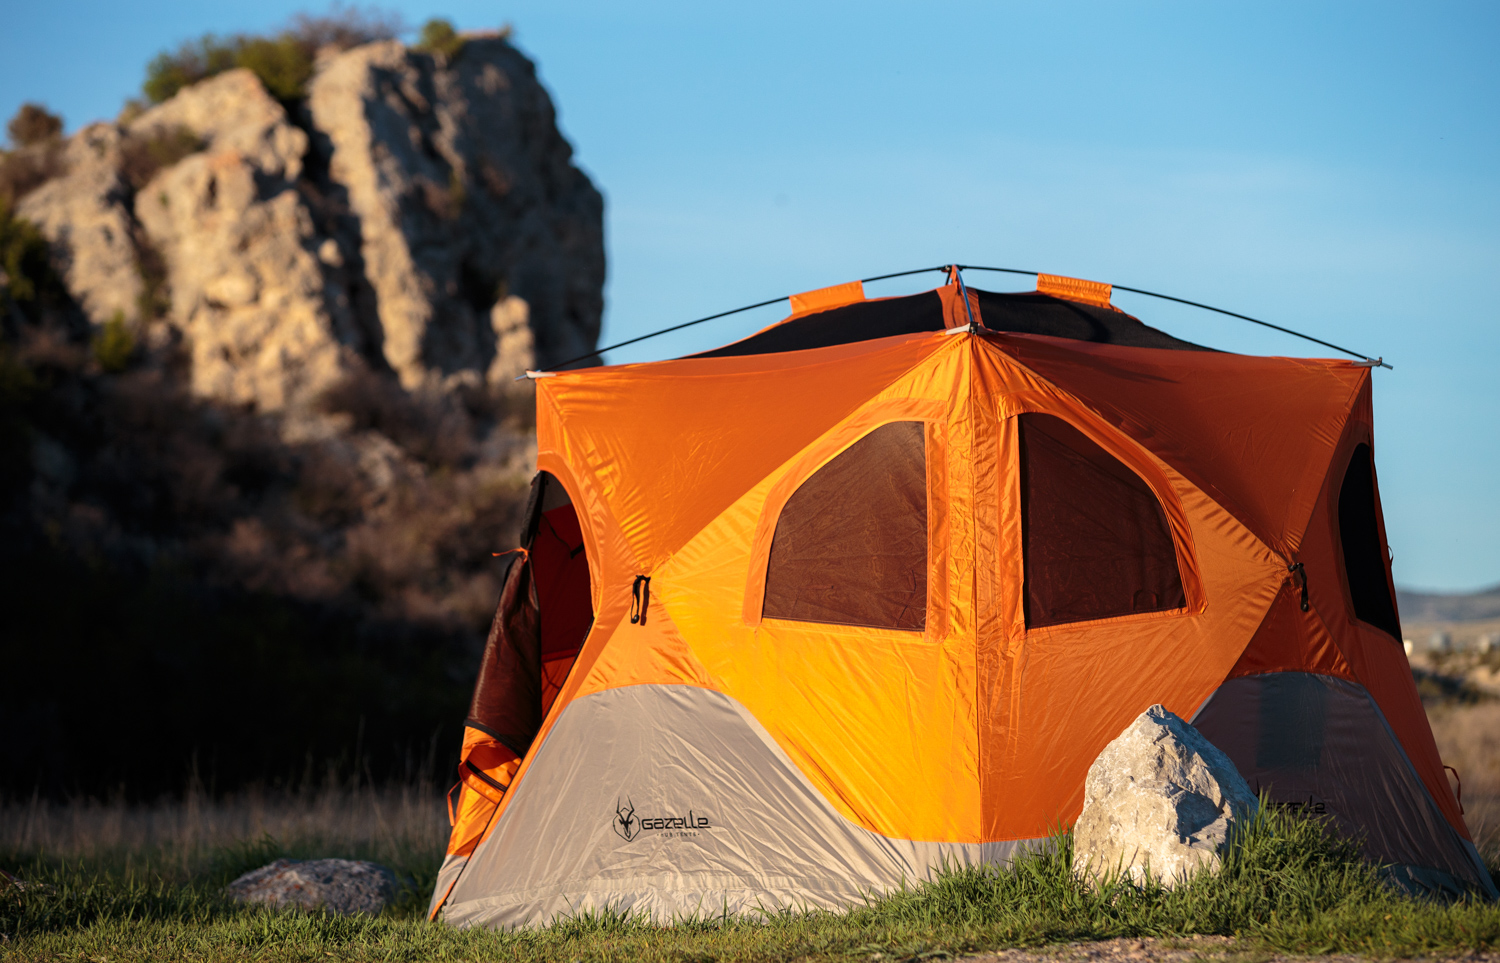 First Look: Gazelle Pop-Up Tent Is Family-Size Palace | GearJunkie